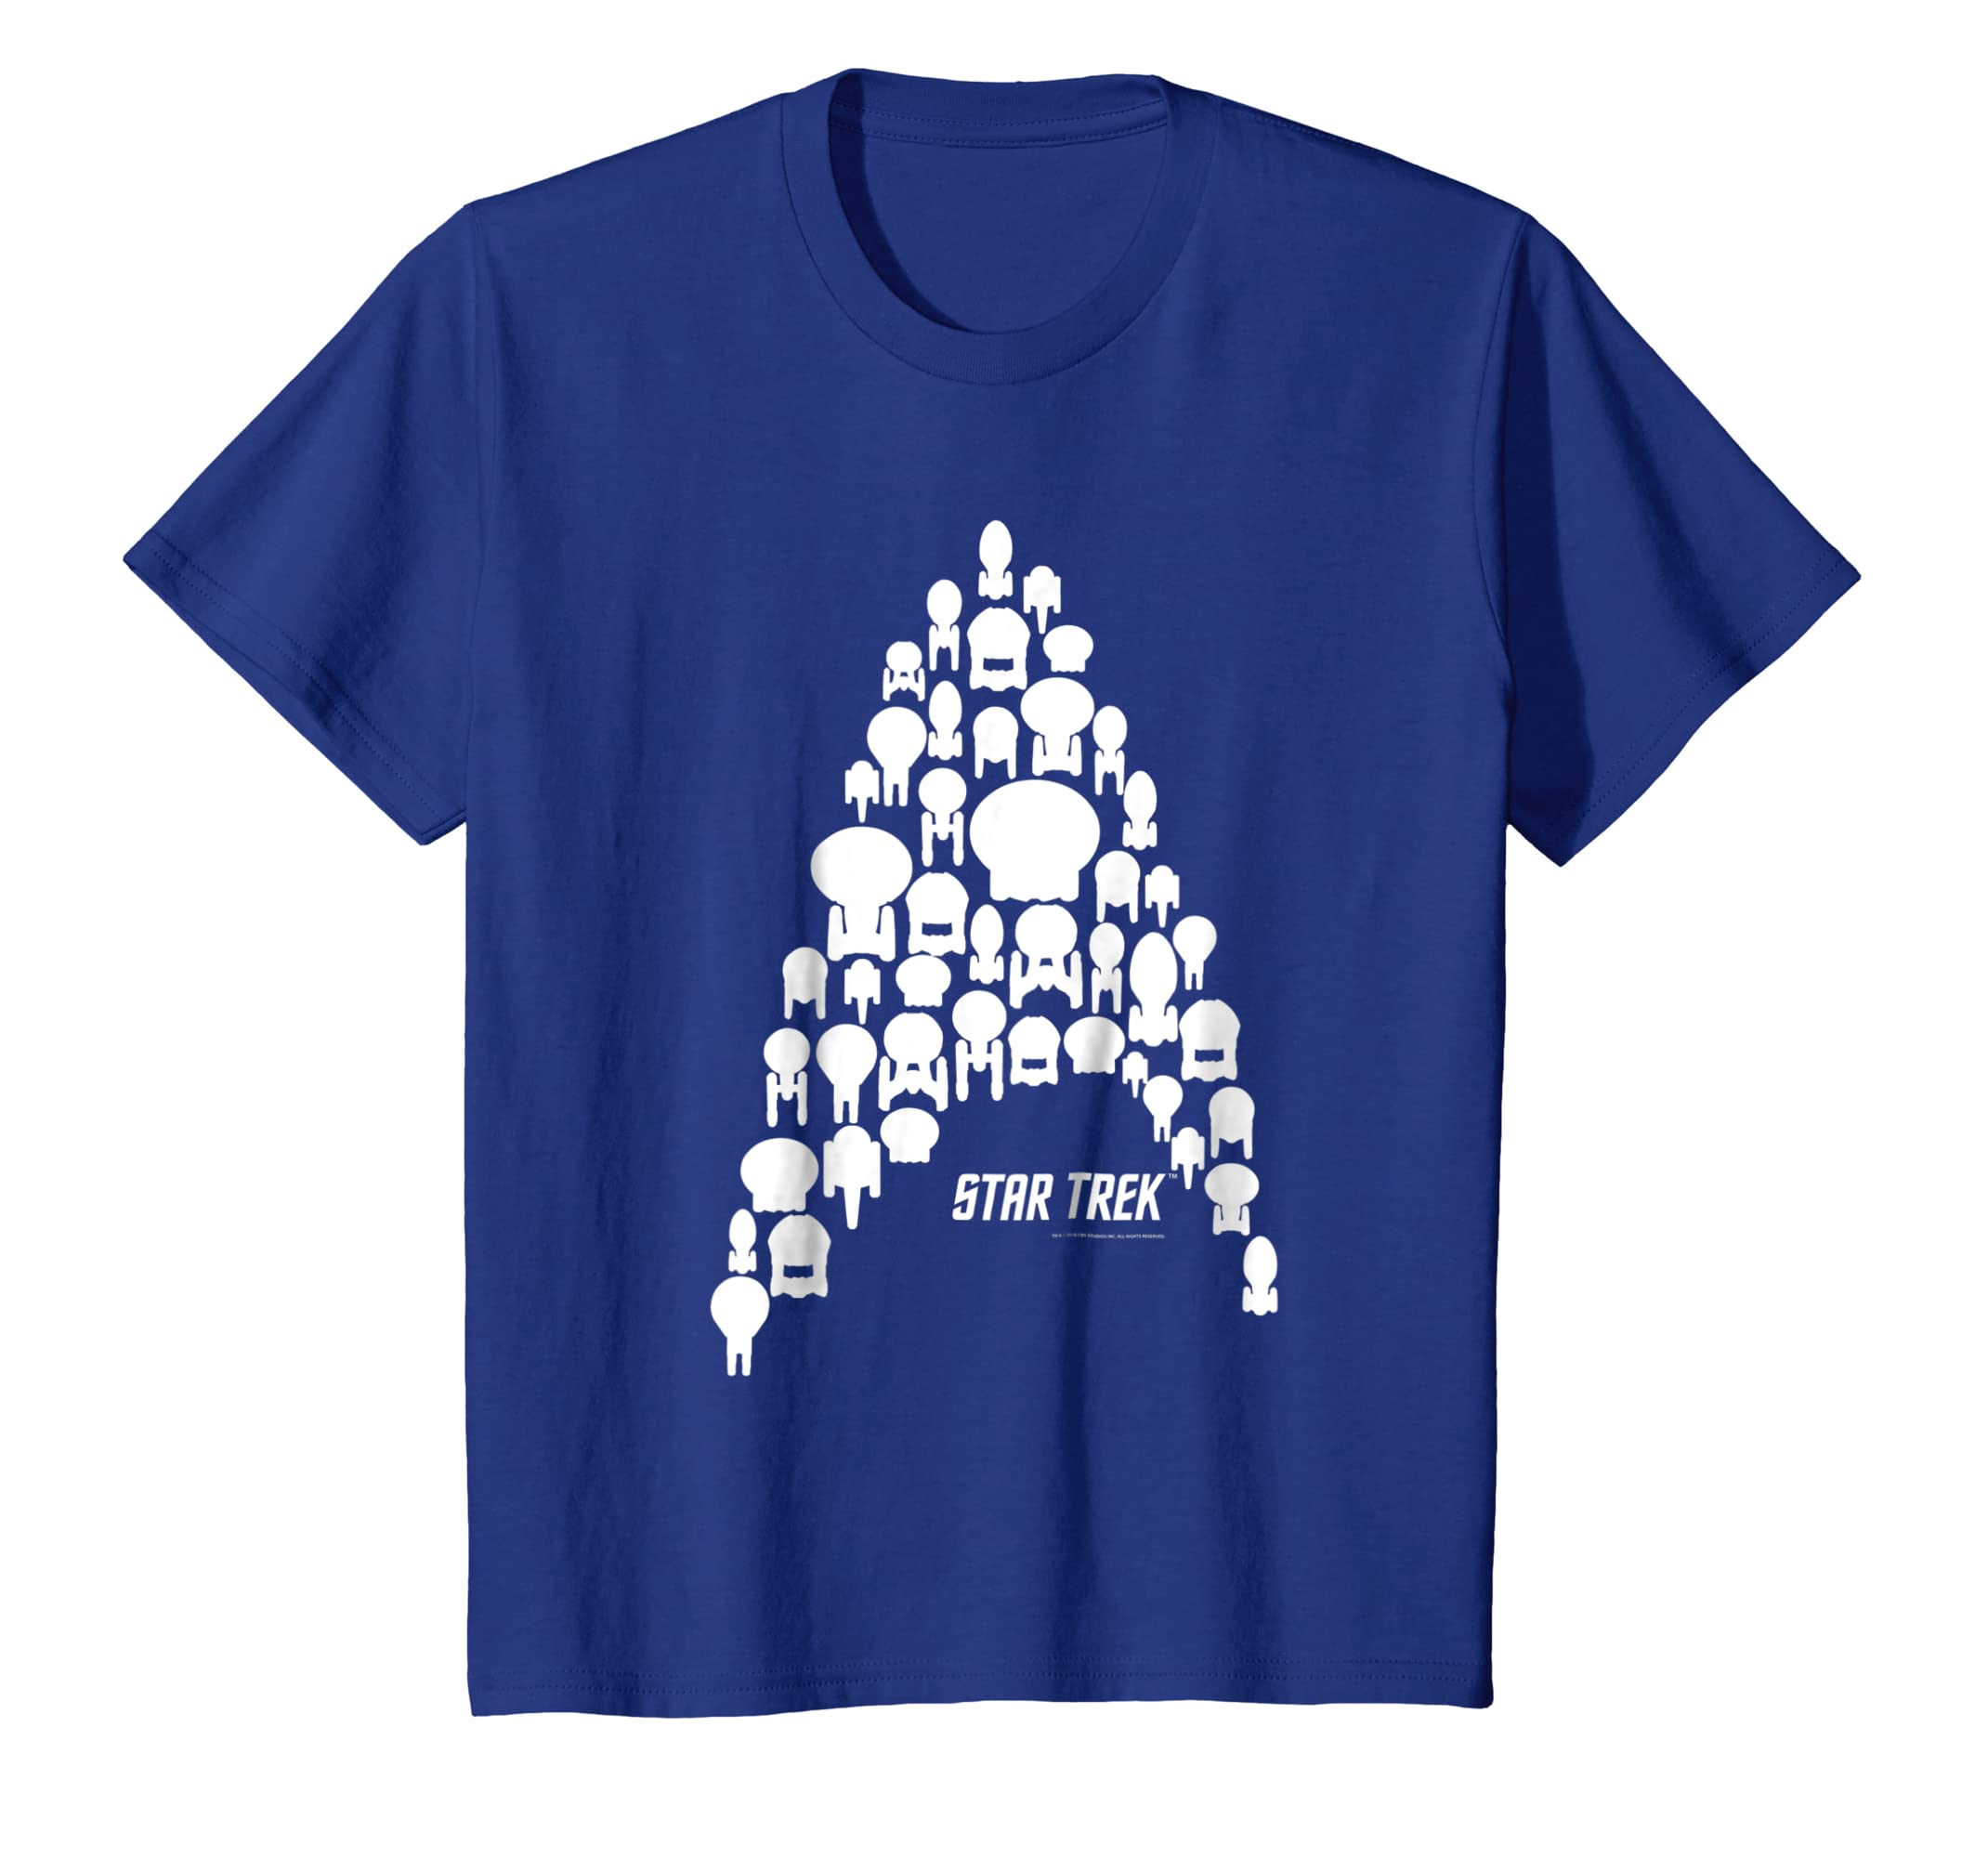 bc40e1be Amazon.com: Star Trek Federation Fleet Delta Silhouette Graphic T-Shirt:  Clothing